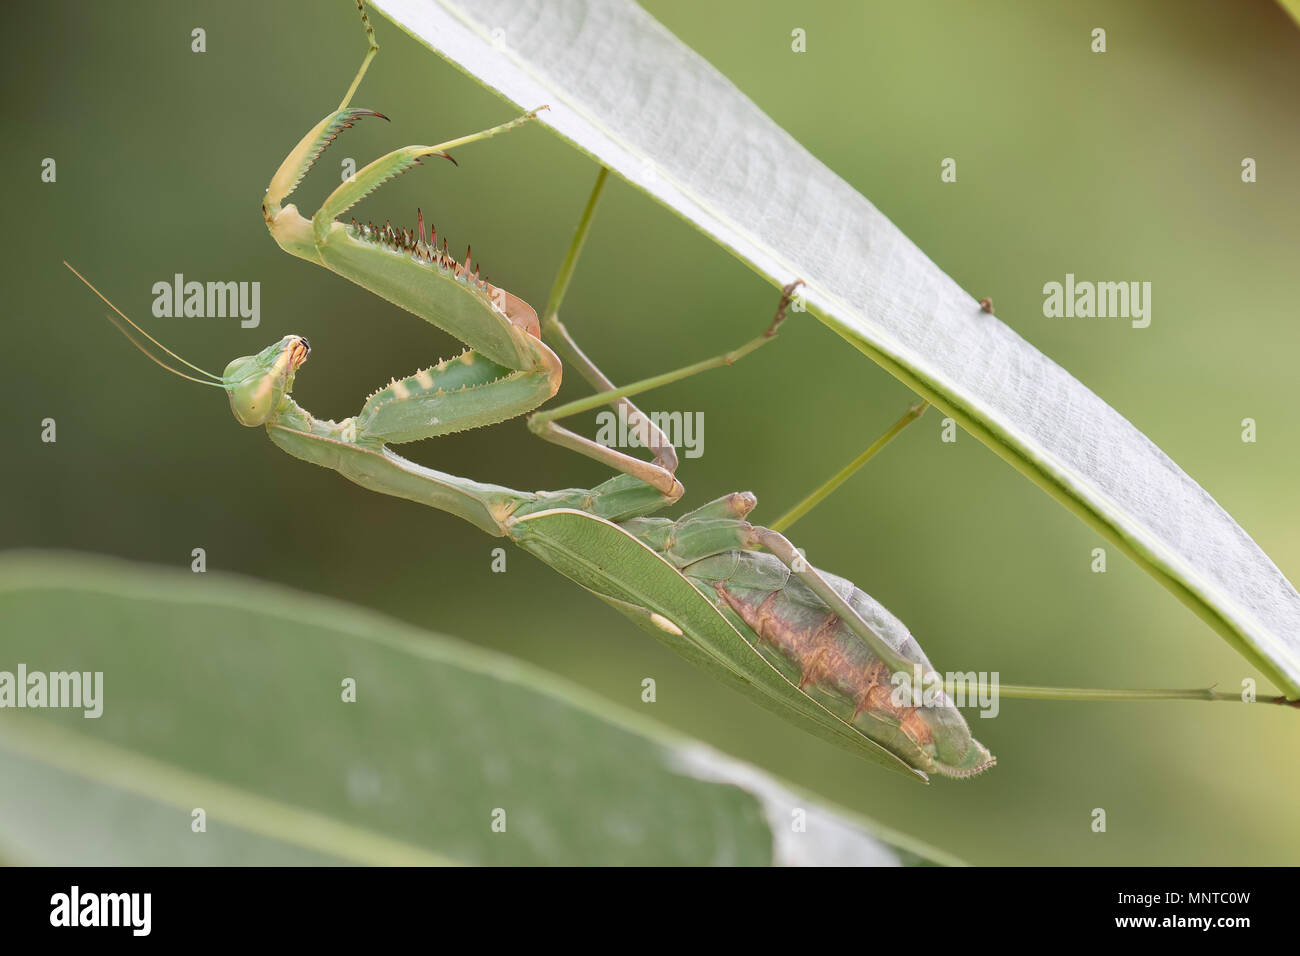 giant African mantis, Sphodromantis viridis in the wild amongst a bush in a garden in cyprus during may. Stock Photo